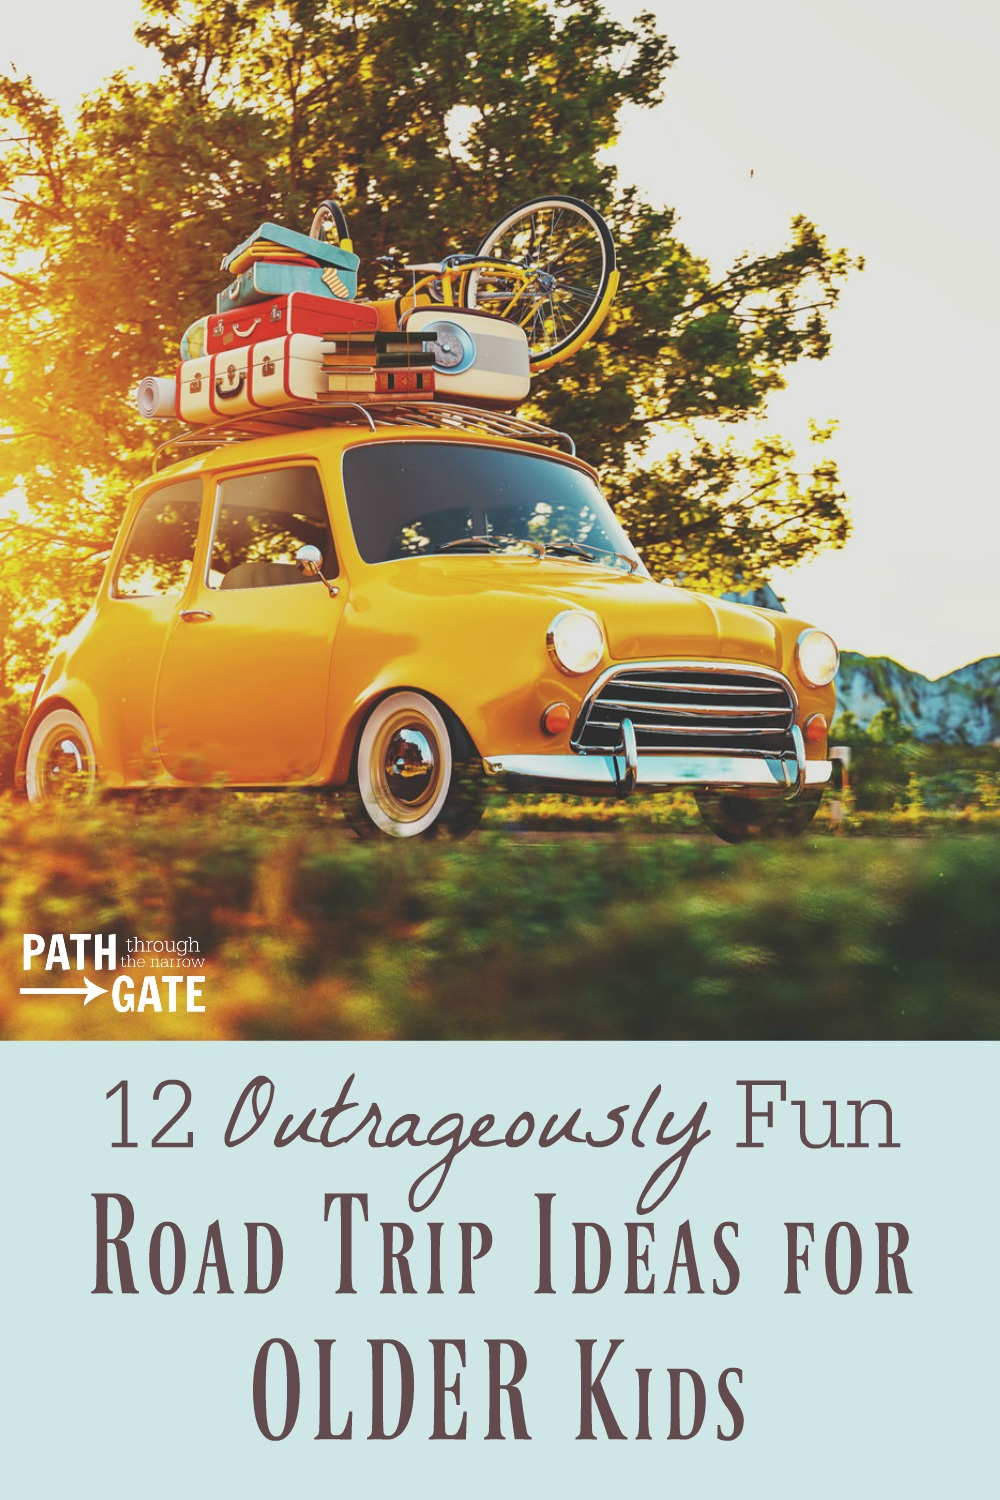 Going on a family vacation, Sunday School outing, or youth group trip with older kids? Here are 12 Outrageously Fun Road Trip Ideas for Older Kids.